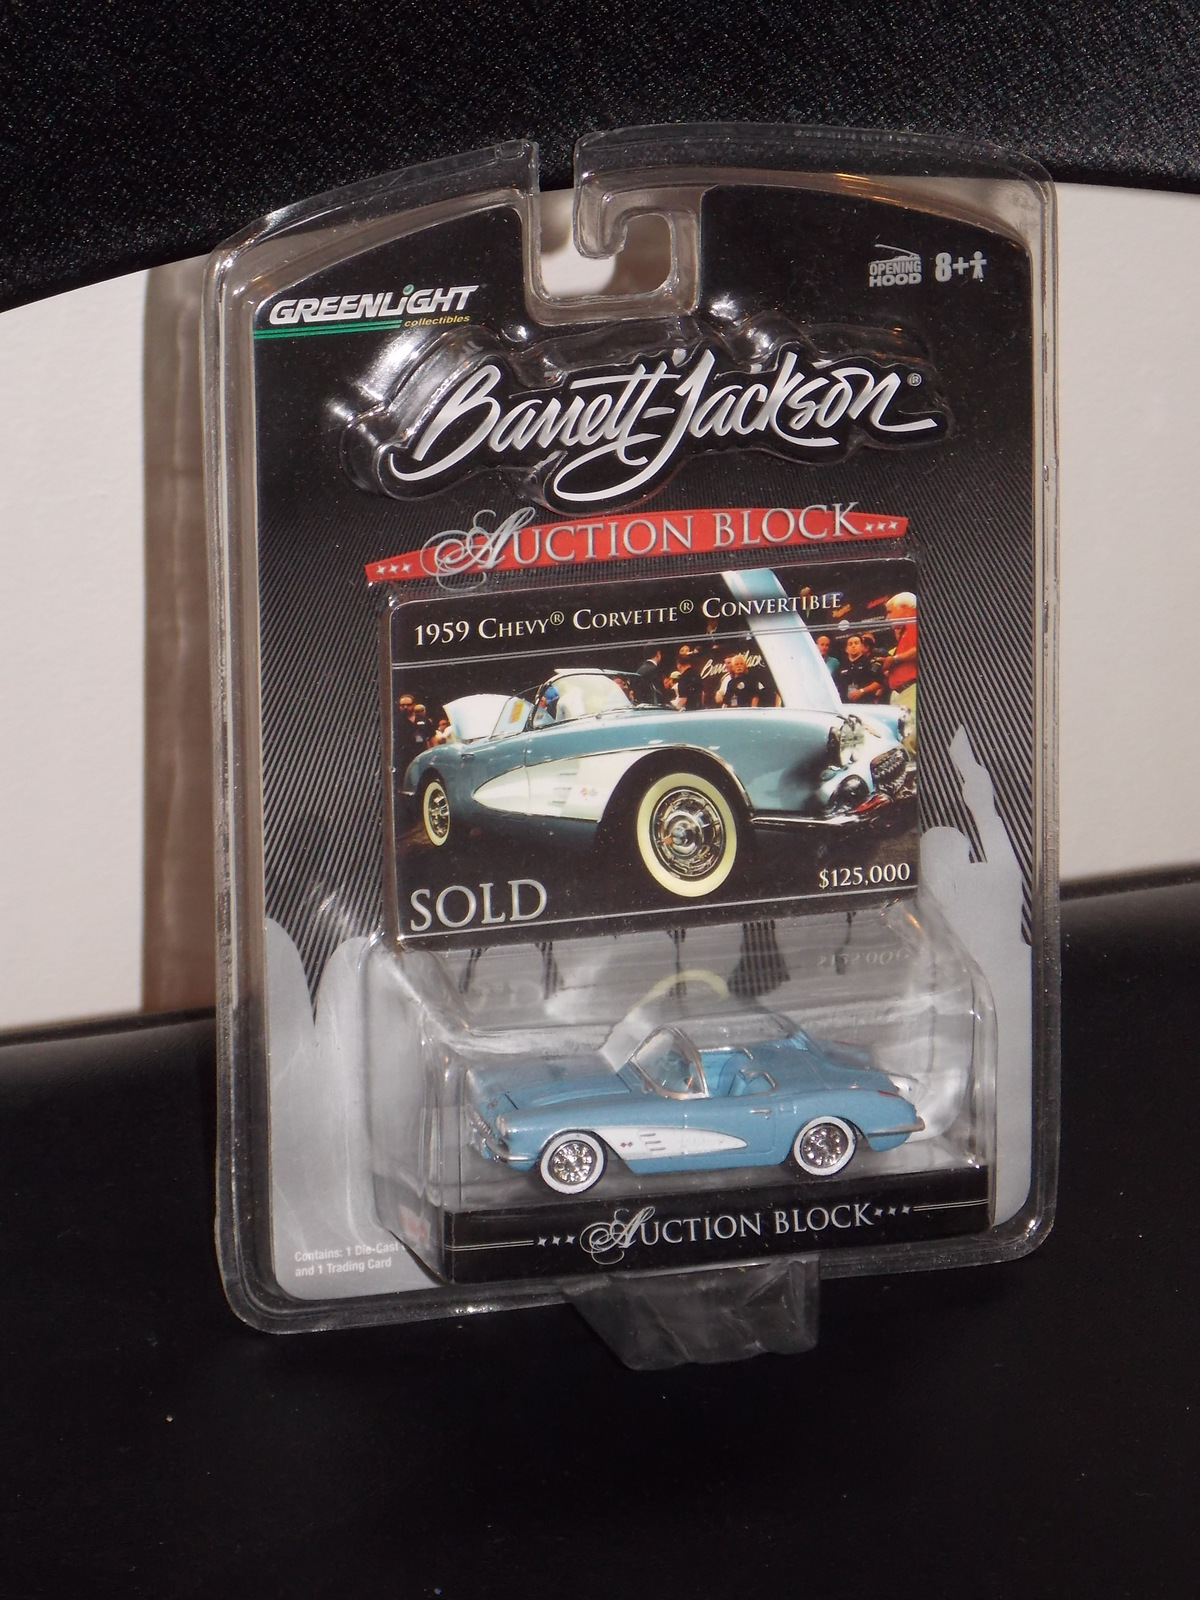 Primary image for 2007 Barrett Jackson 1959 Chevy Corvette Convertible Auction Block New